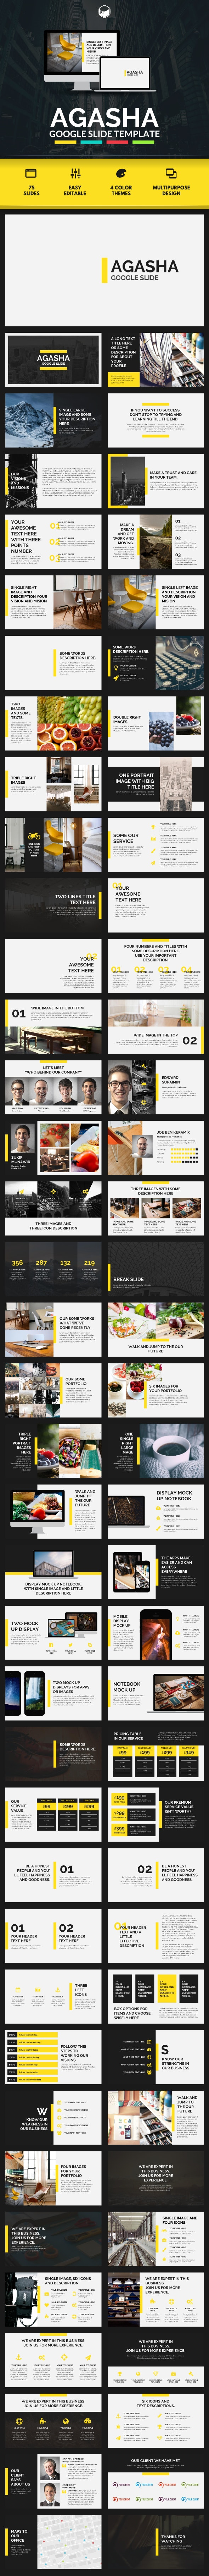 AGASHA - Google Slide Template - Google Slides Presentation Templates